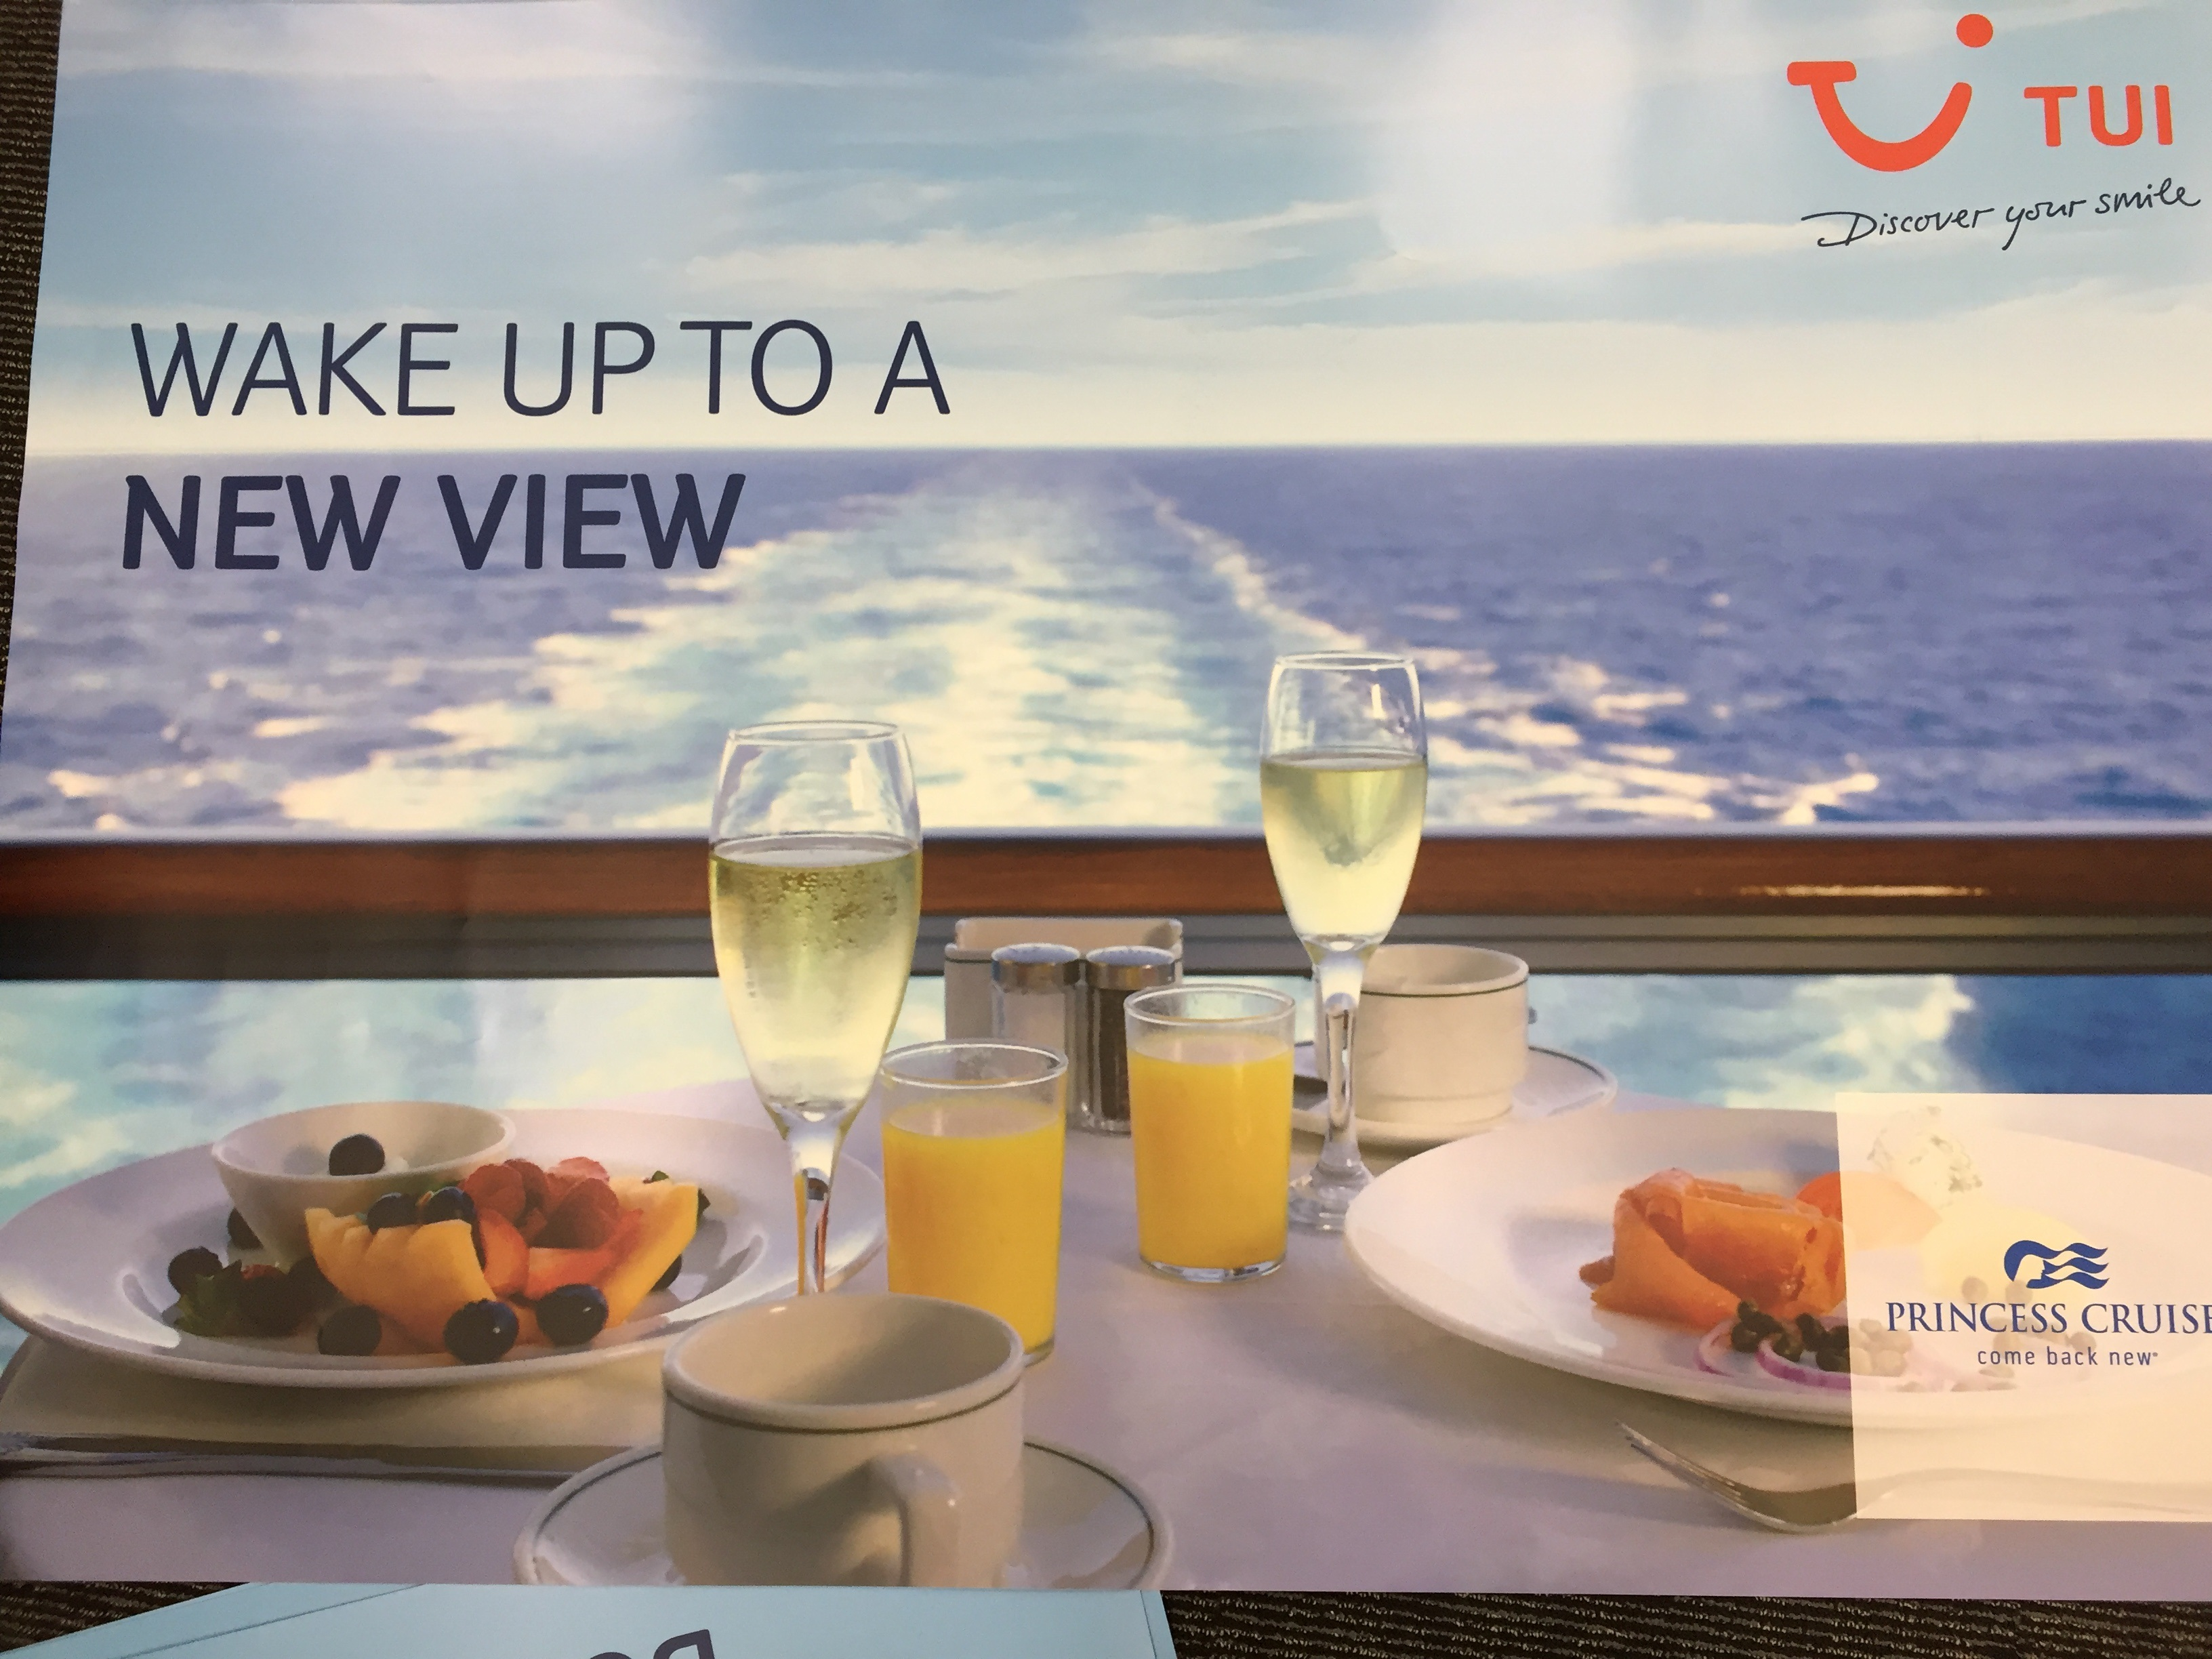 TUI Cruise Offers